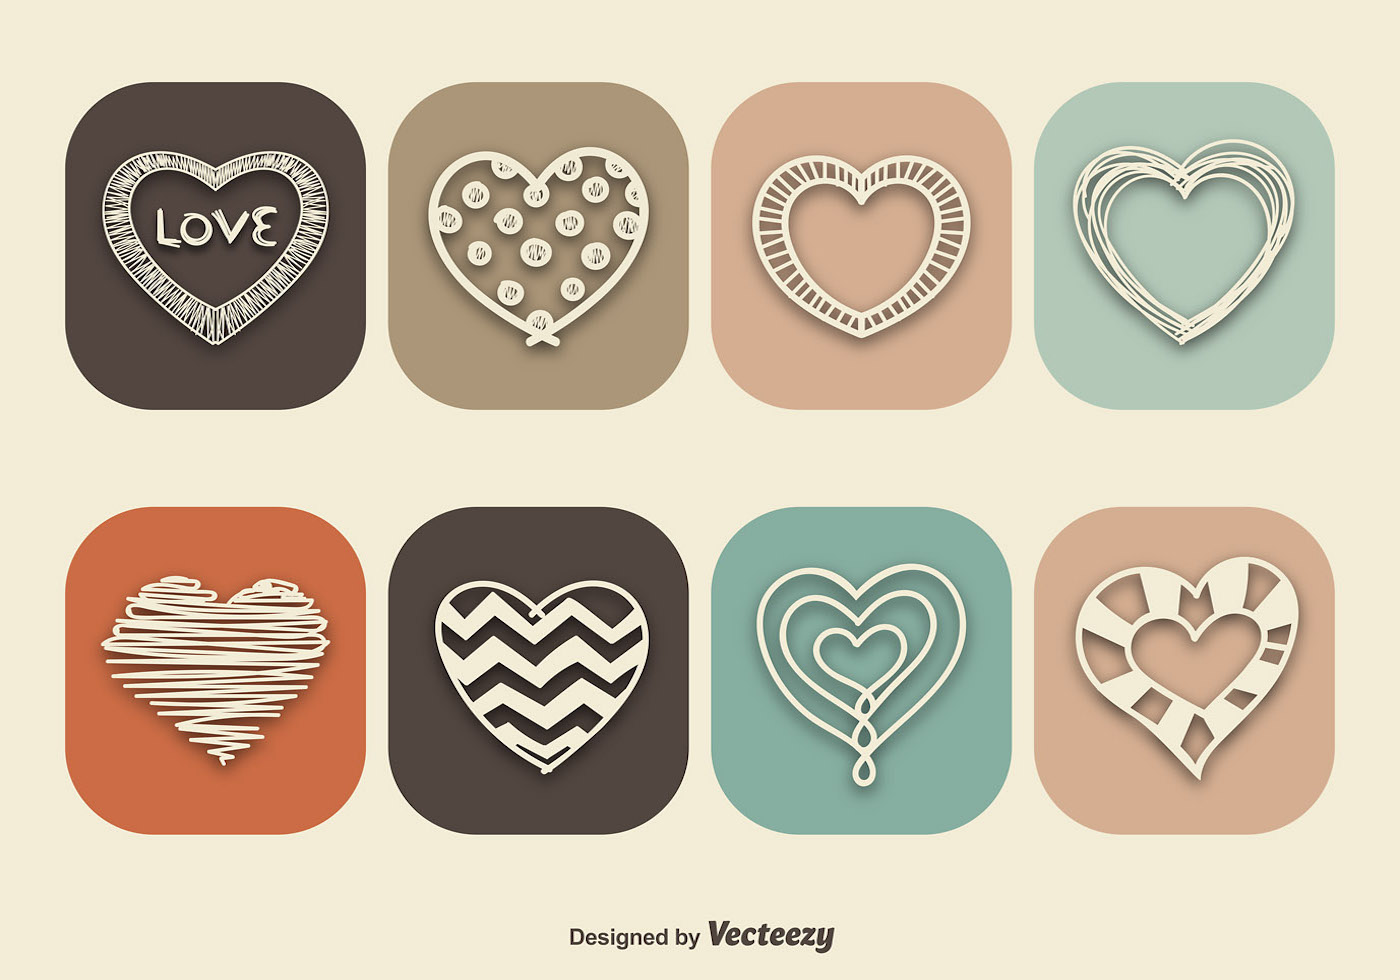 Vintage Style Heart Icons Download Free Vector Art Stock Graphics Images